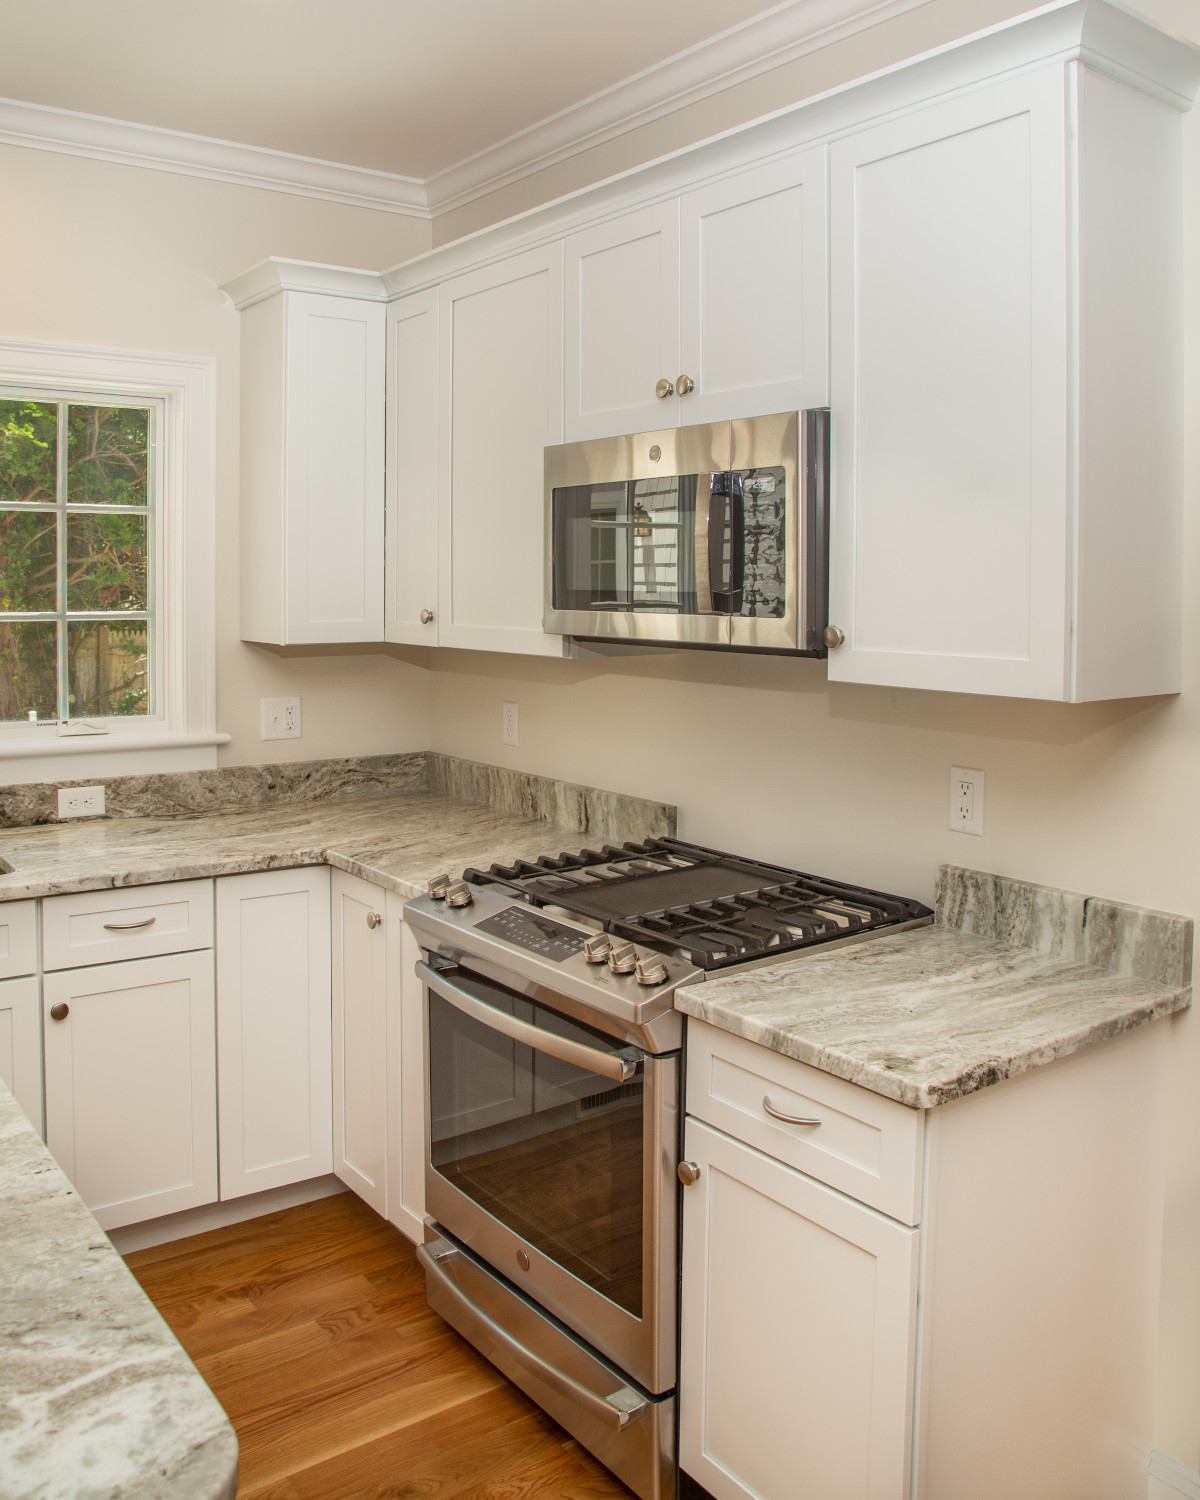 View of kitchen counter and appliances in new home